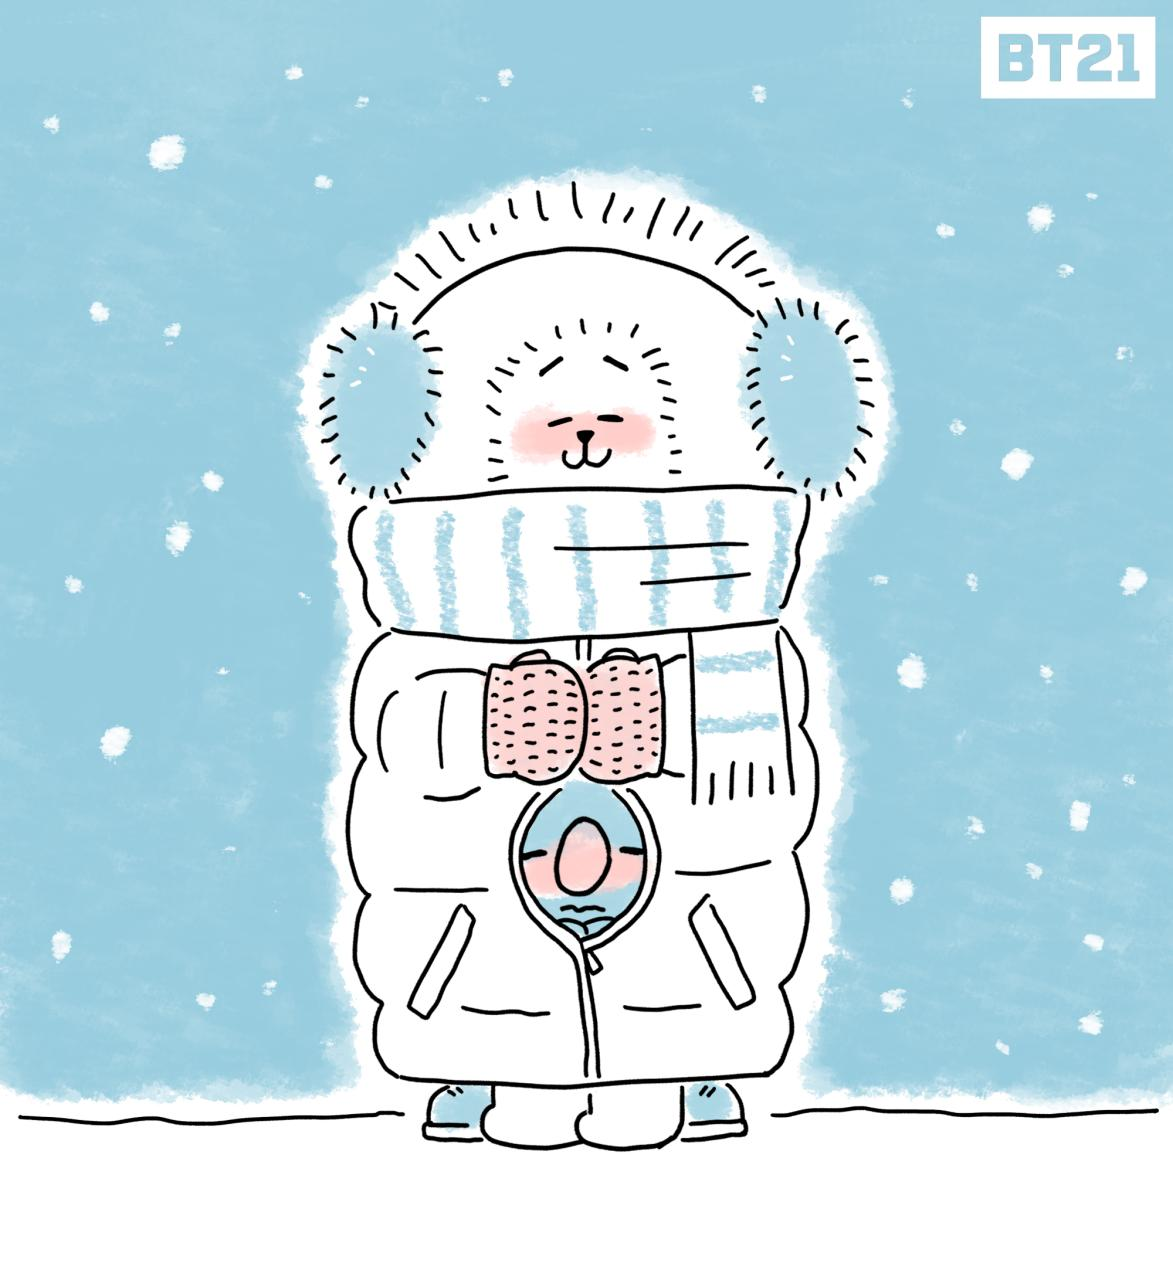 Jin Bts Cute Wallpaper Picture Bt21 Winter Is Not Over Rj 180226